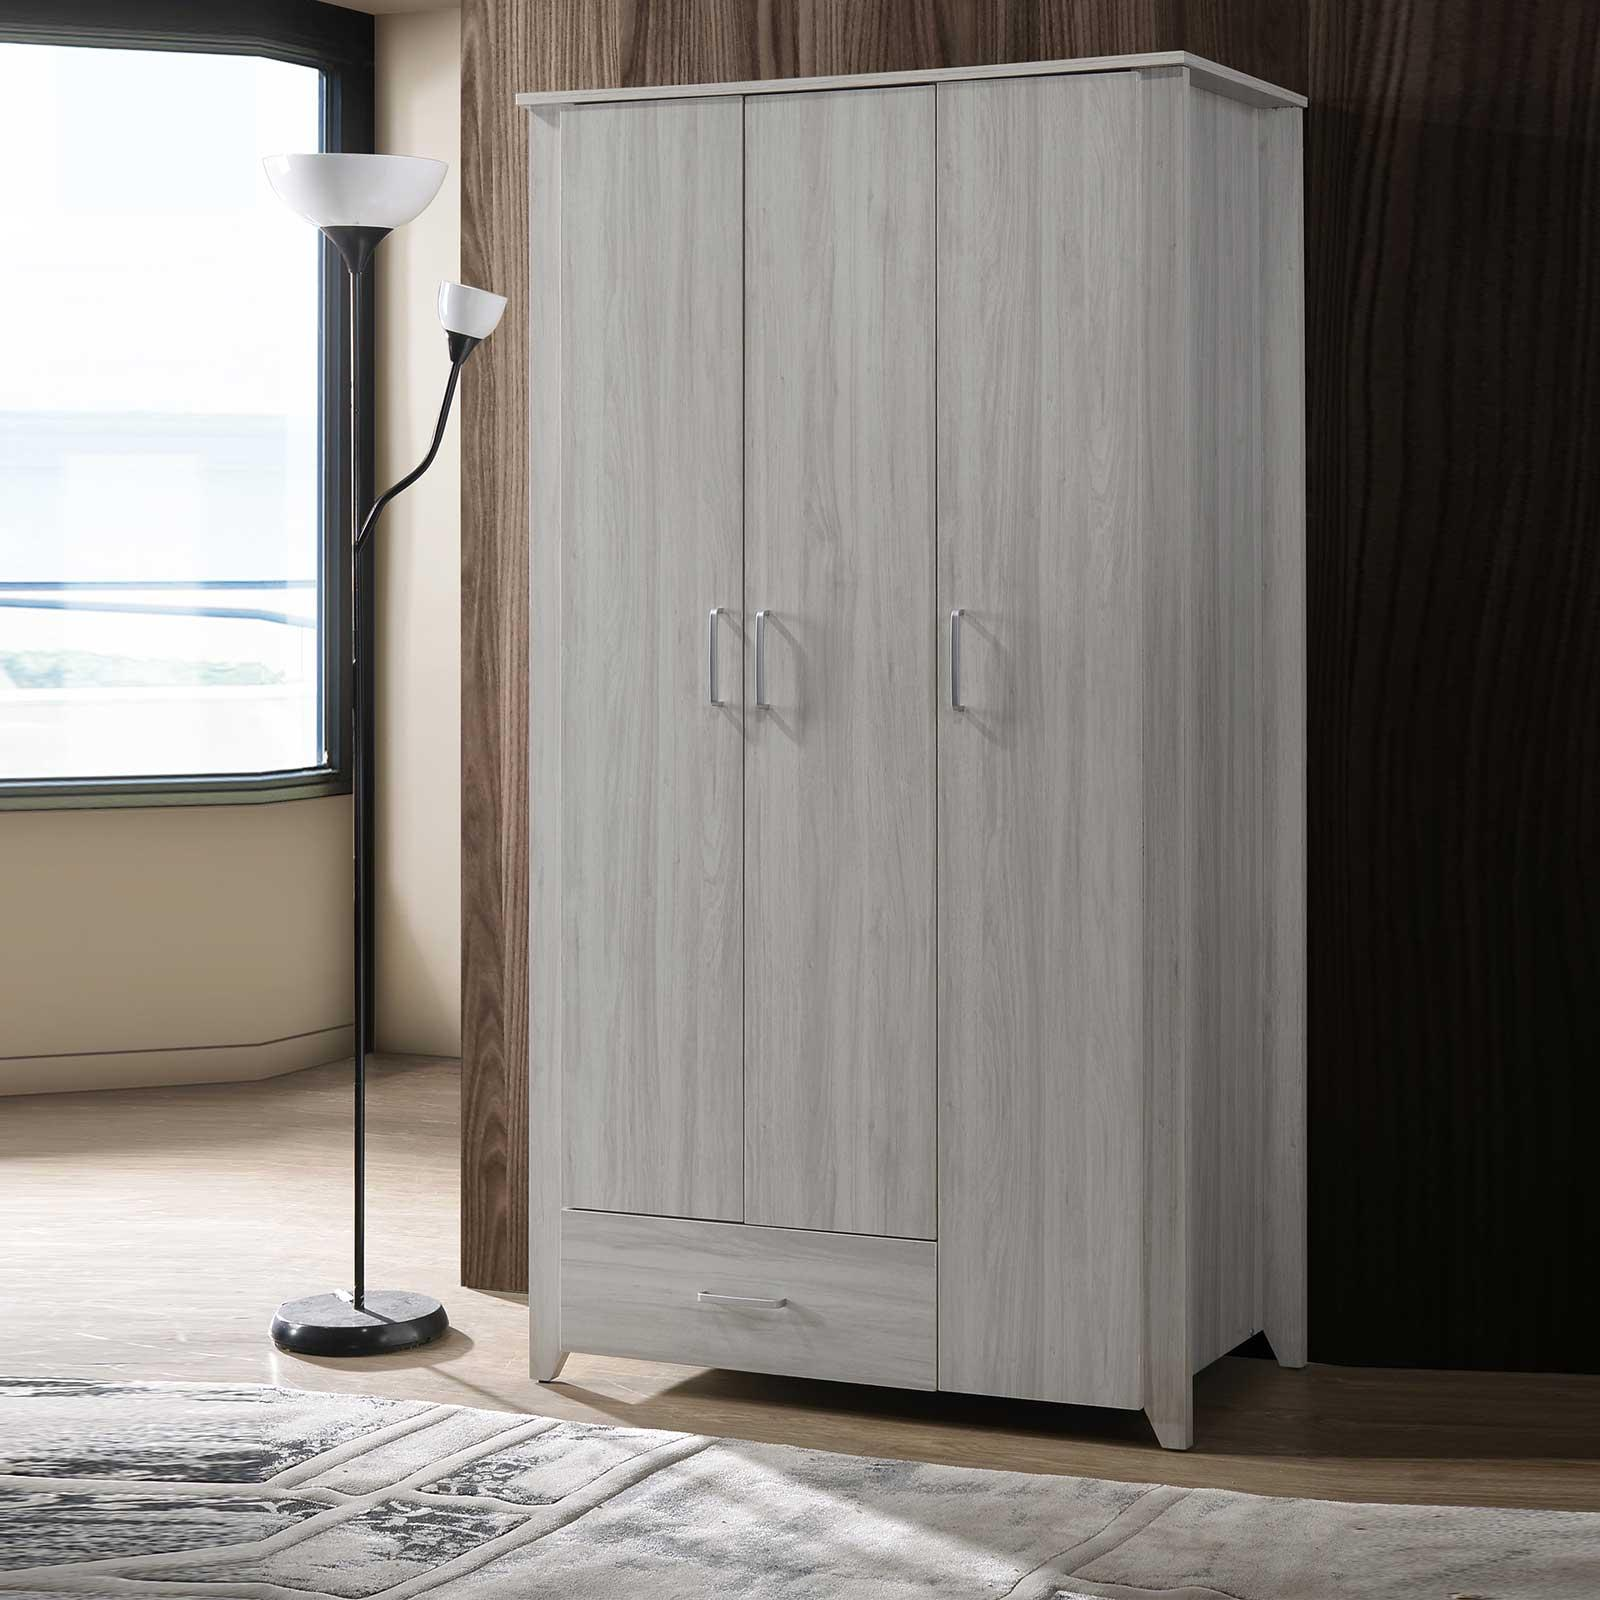 3 Door Wardrobe (Free Installation + Delivery) with 1 Drawer in White Oak E-LIVING Furniture